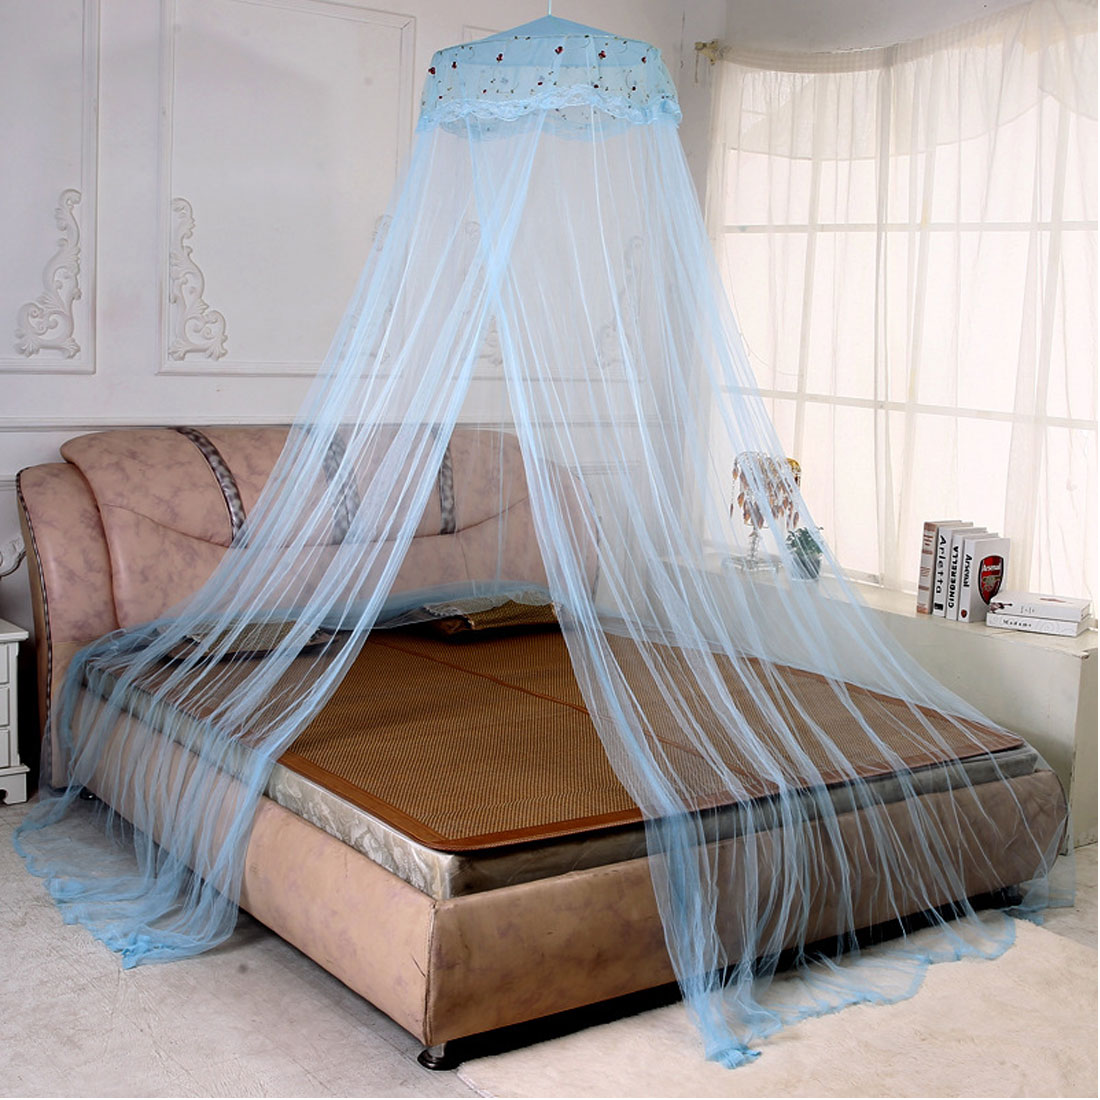 Bedroom Polyester Dome Shaped Bugs Midges Insect Mosquito Net Bed Canopy Blue by